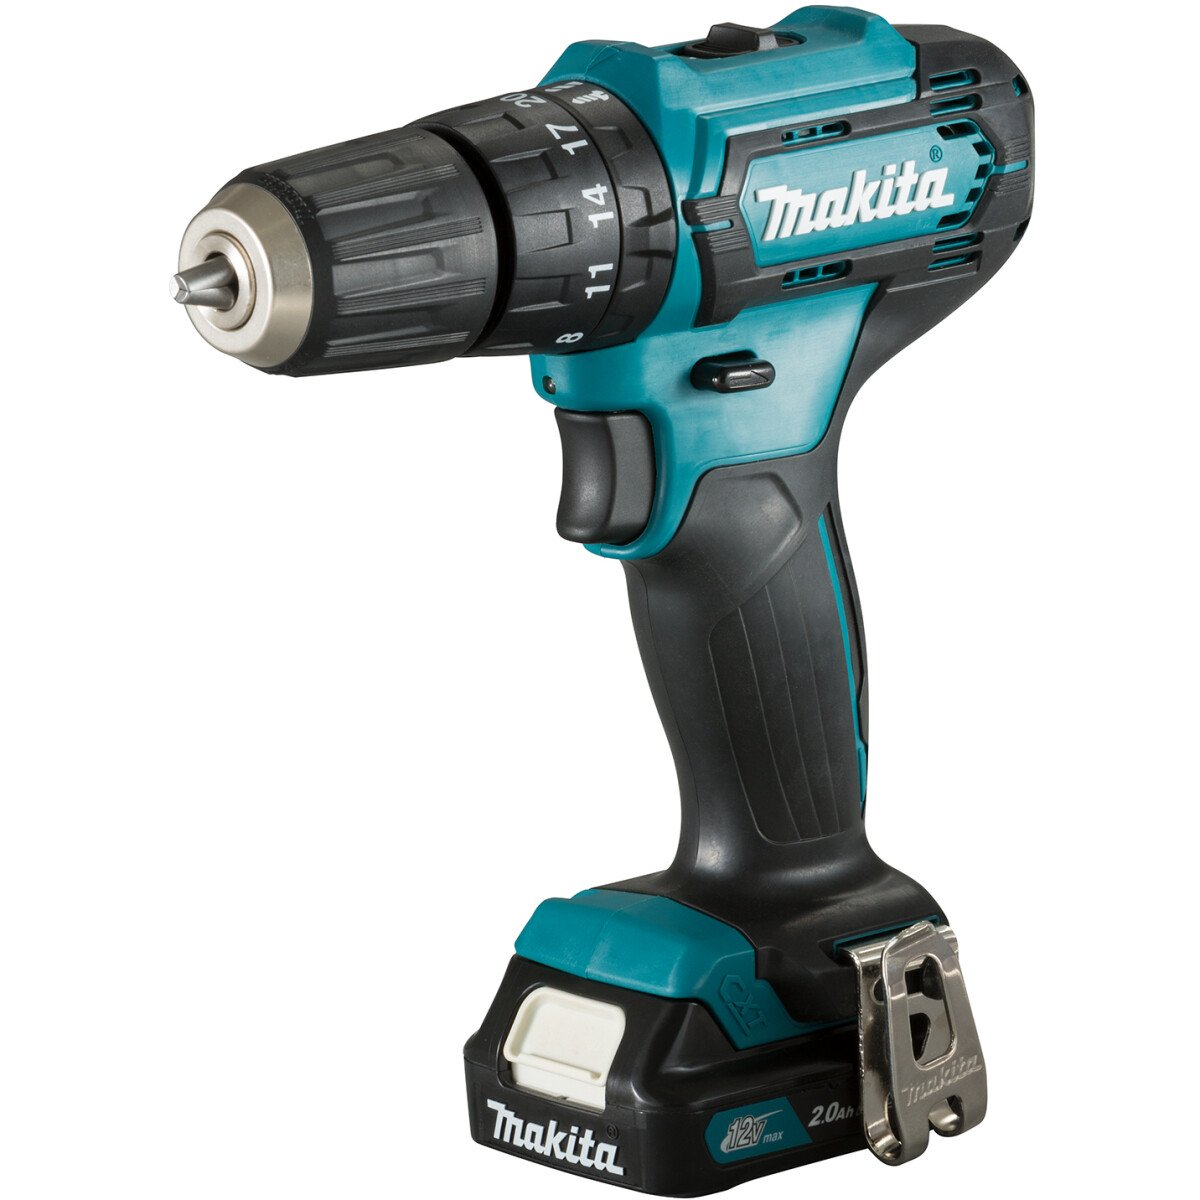 Makita HP333DWAE 12Vmax Combi Drill CXT with Battery, Charger & Carry Case (Replaces HP331DWAE)